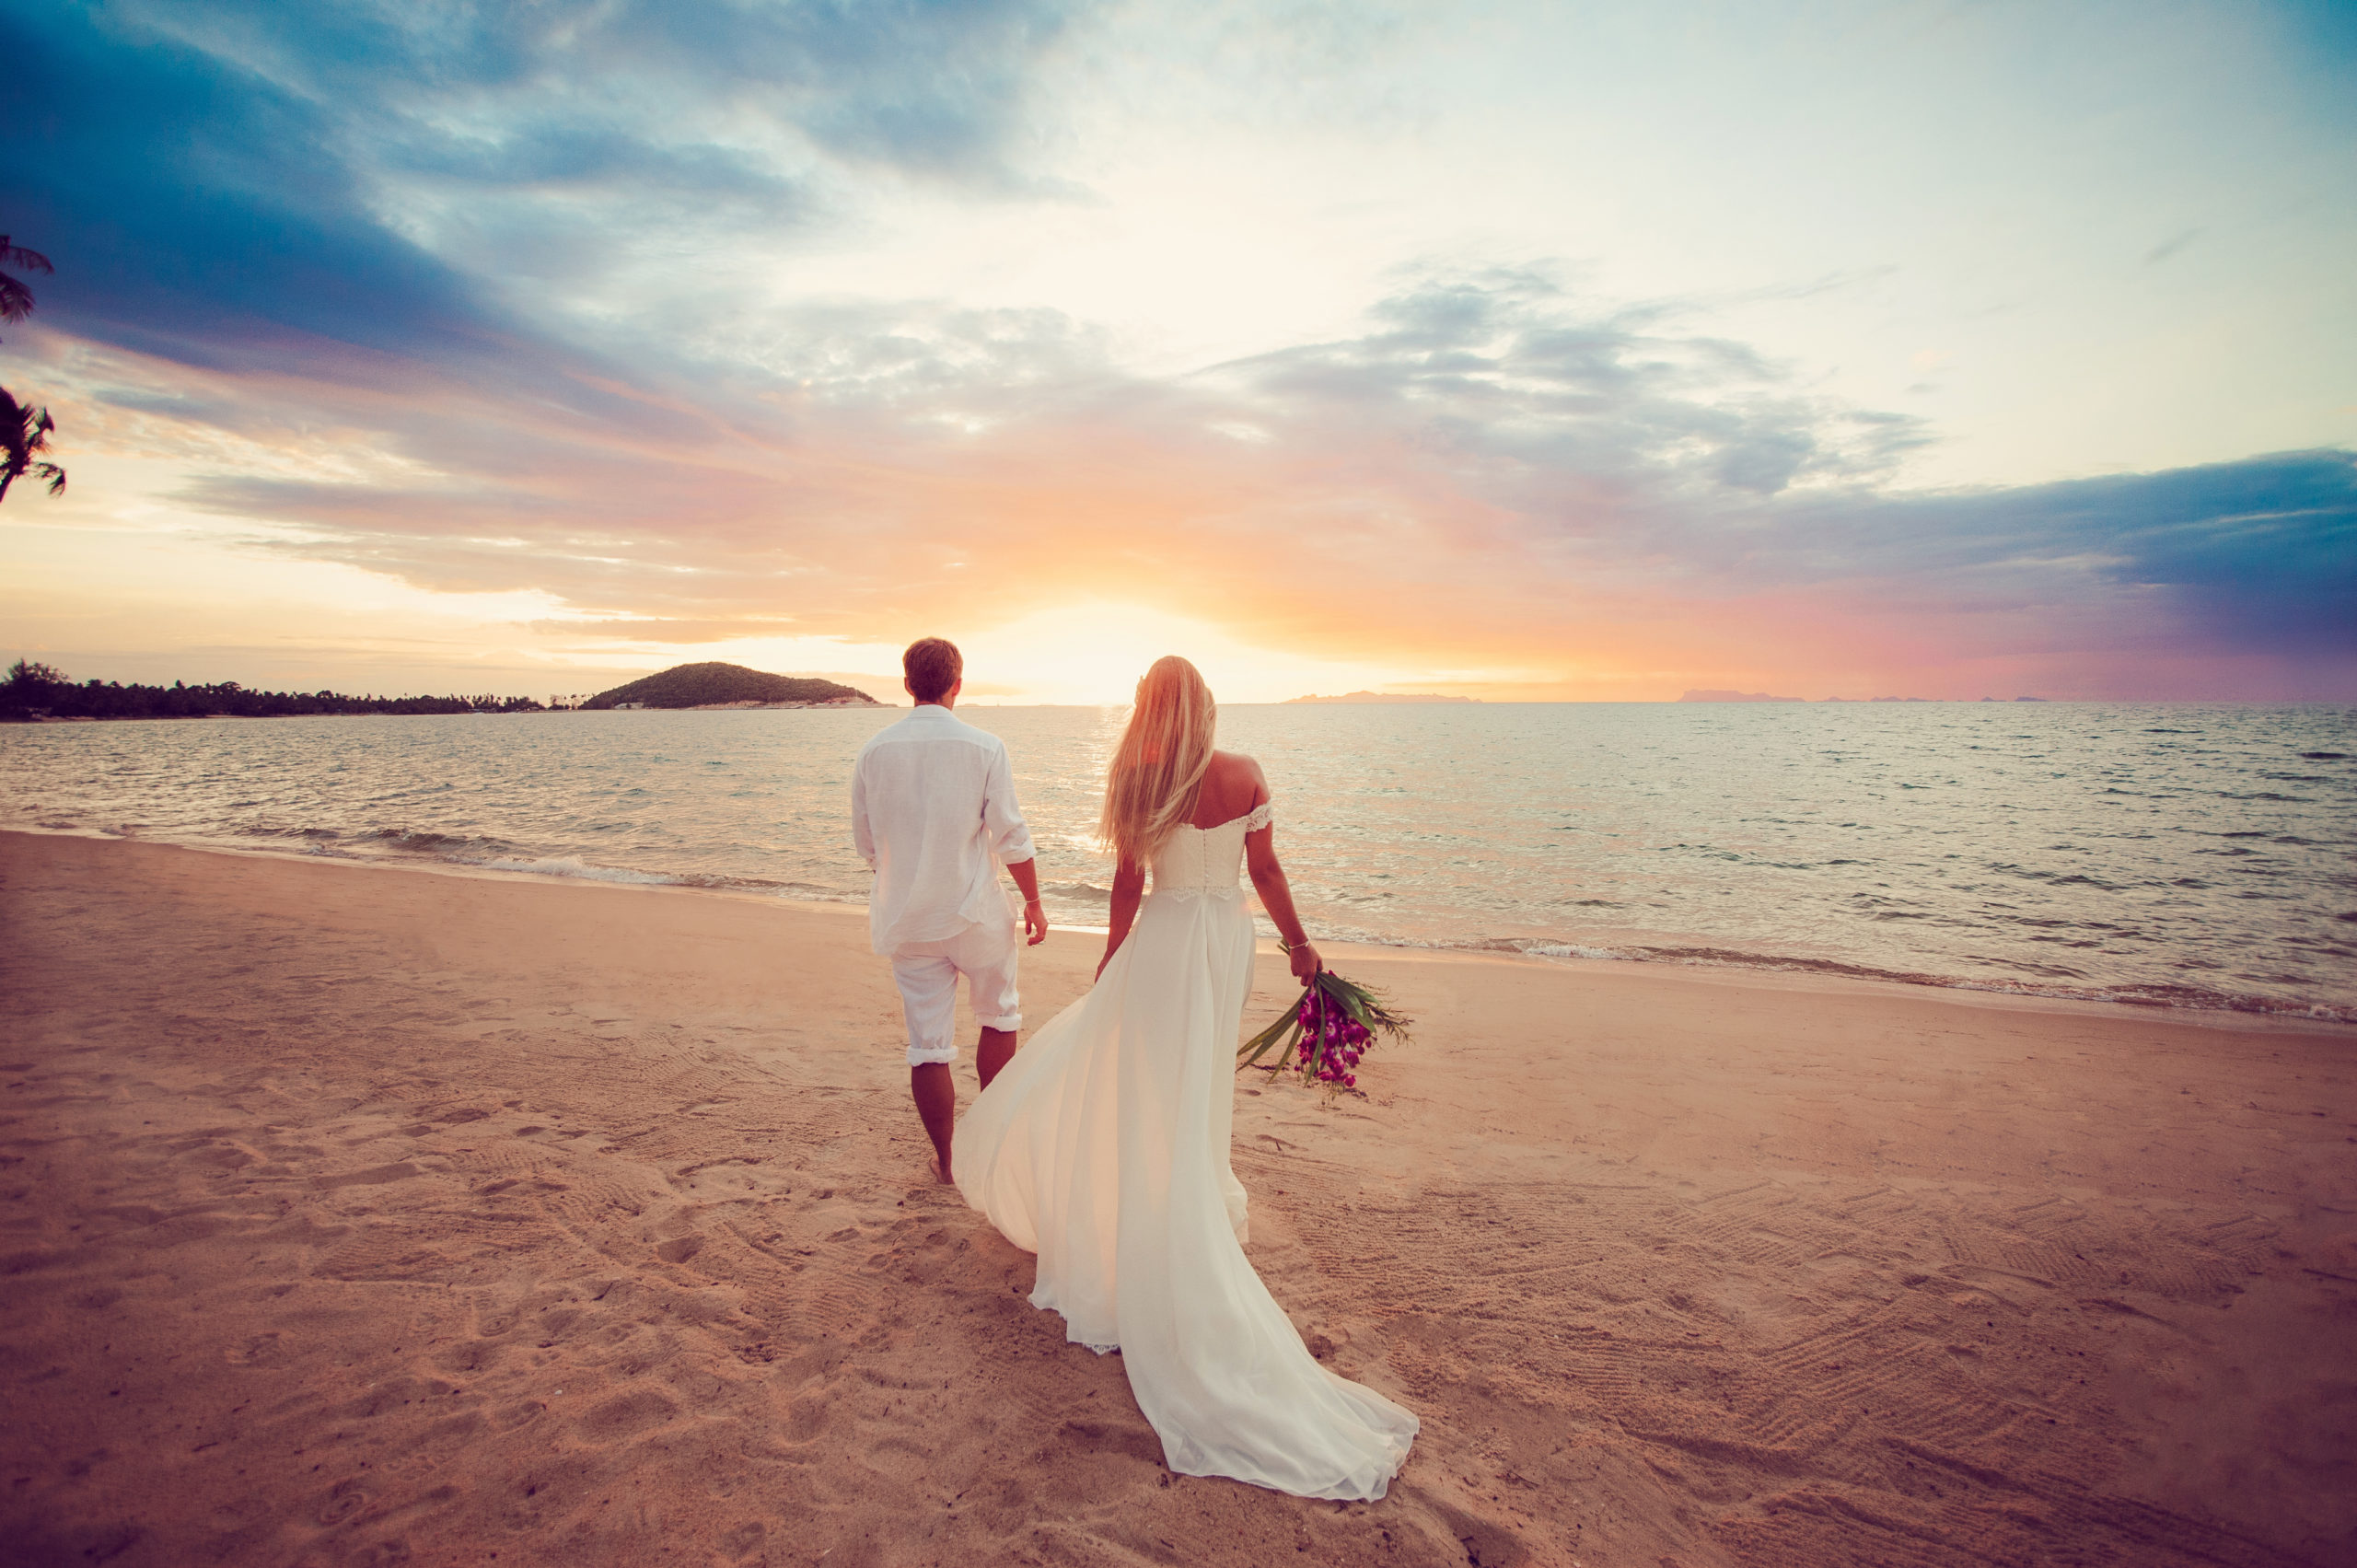 beach wedding sunset couple romantic iconic instaworthy stunning photo aesthetic